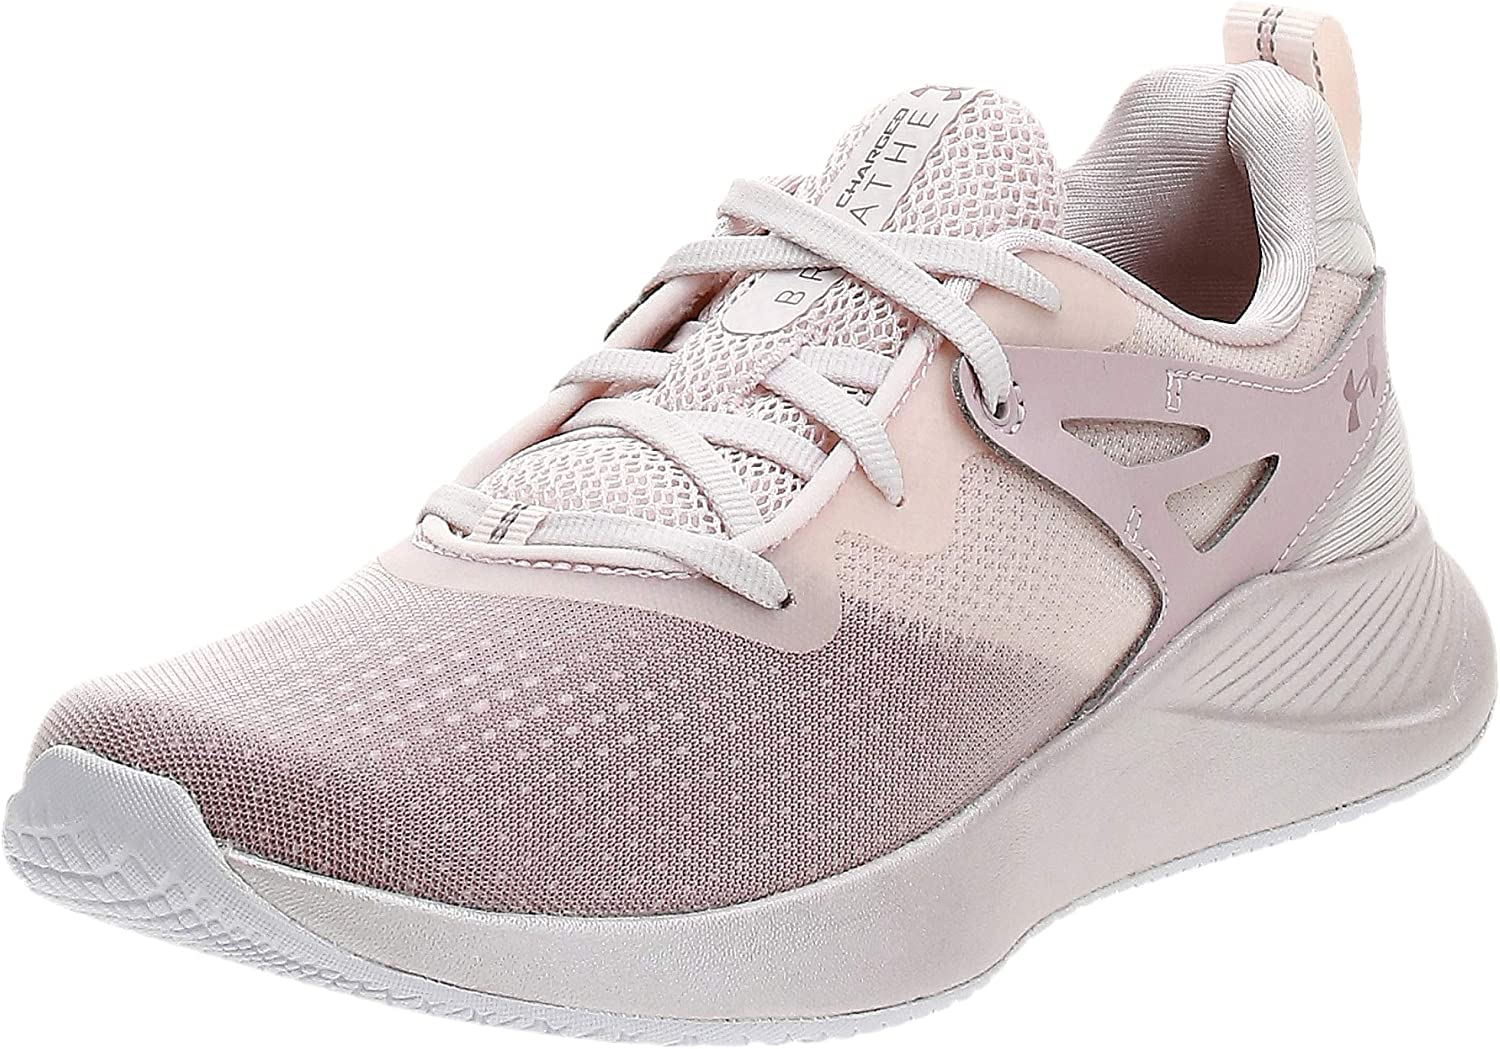 Under Armour Women's Charged Breathe Tr 2 Cross Trainer